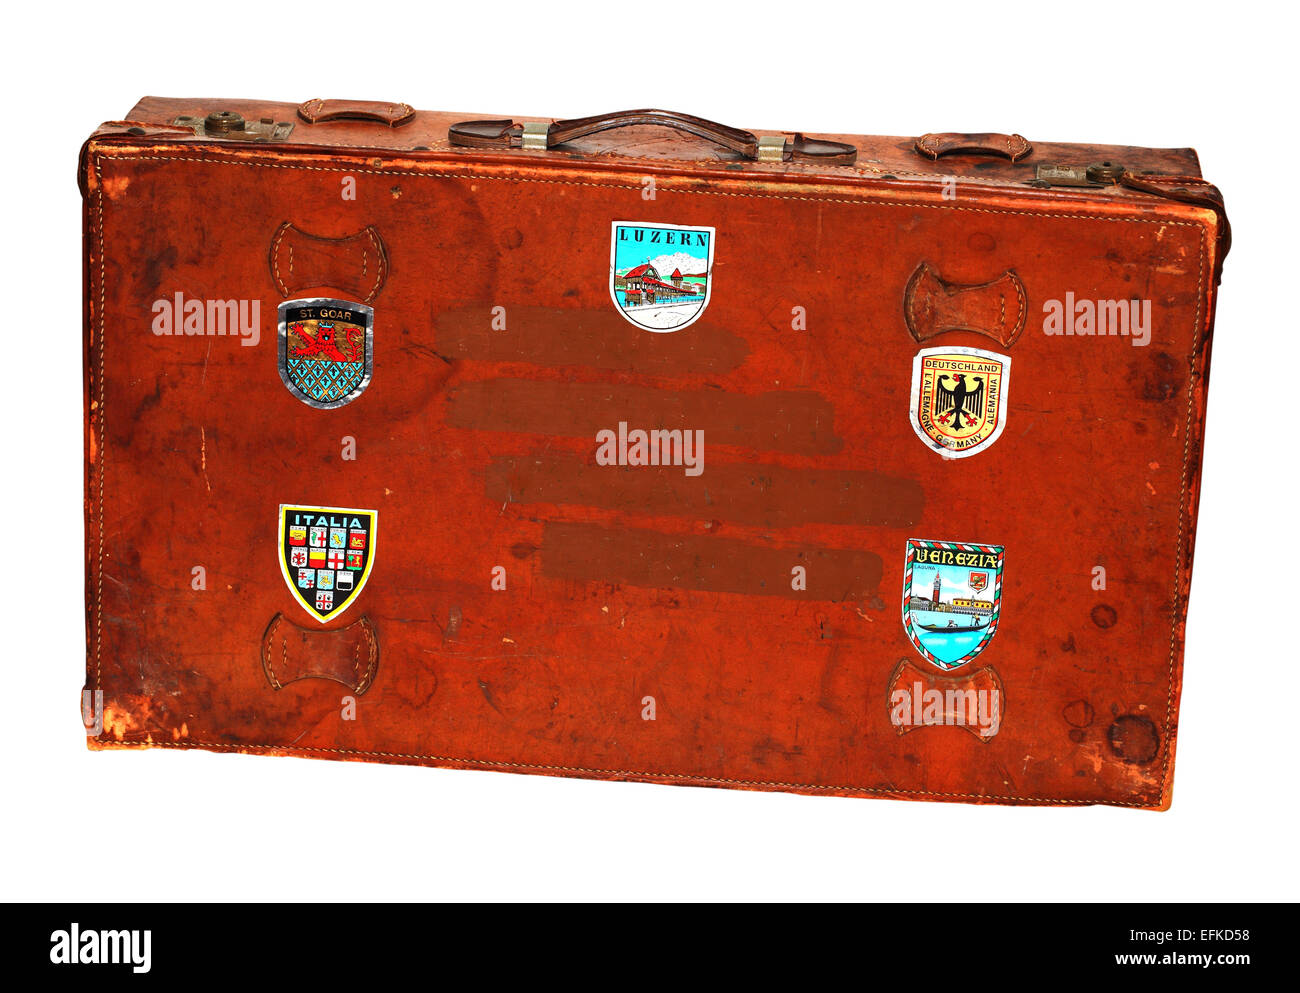 Old leather suitcase with vacation destination stickers on a white background. Please see description - Stock Image